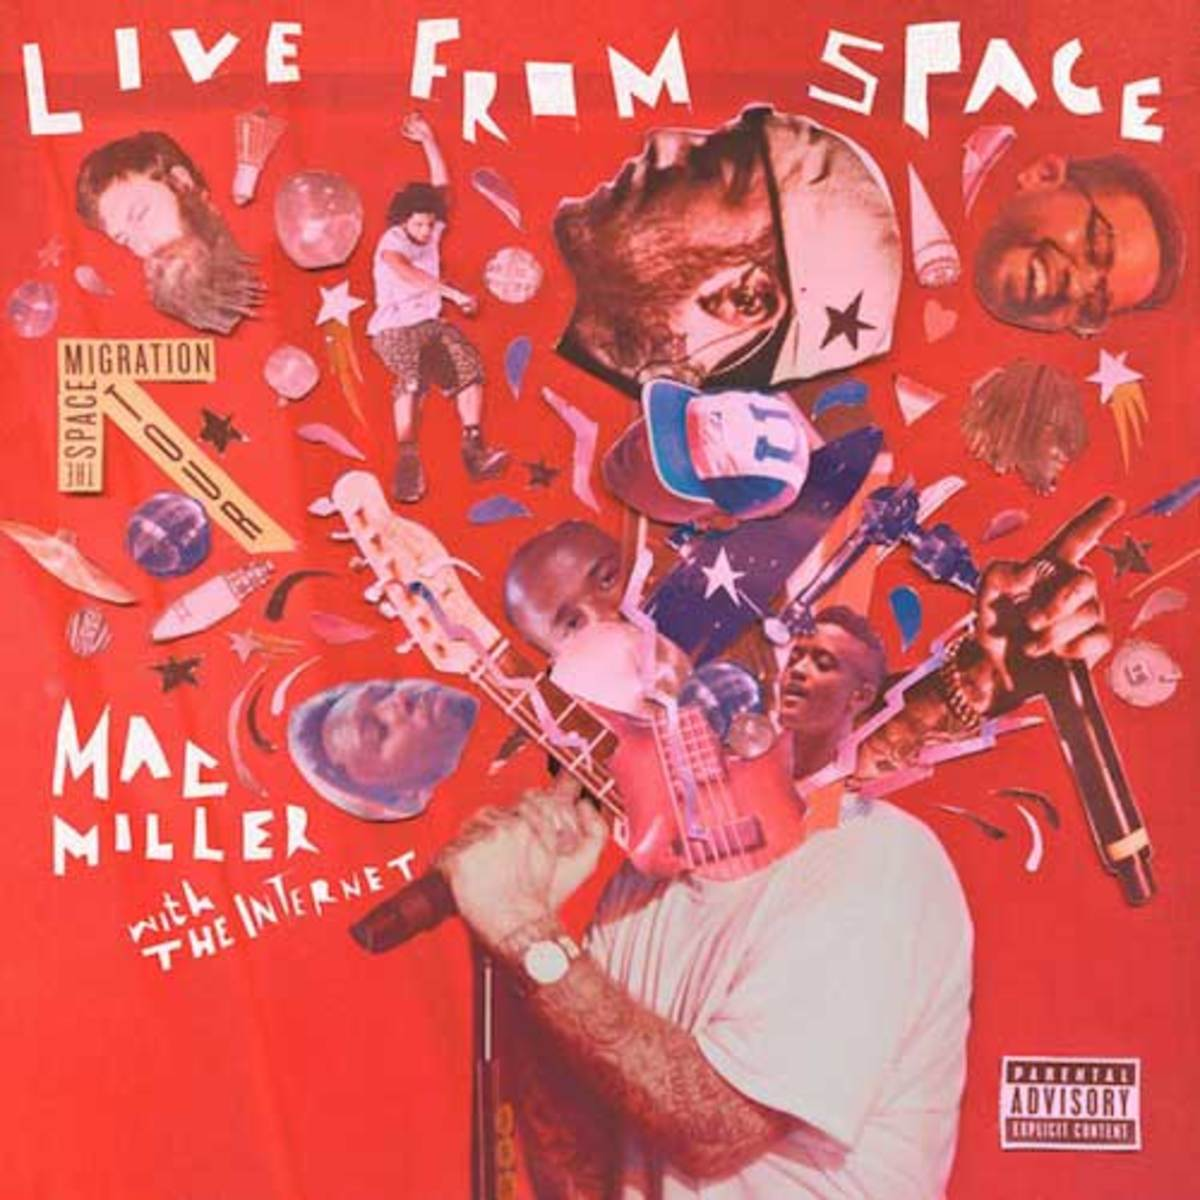 macmiller-livefromspace.jpg